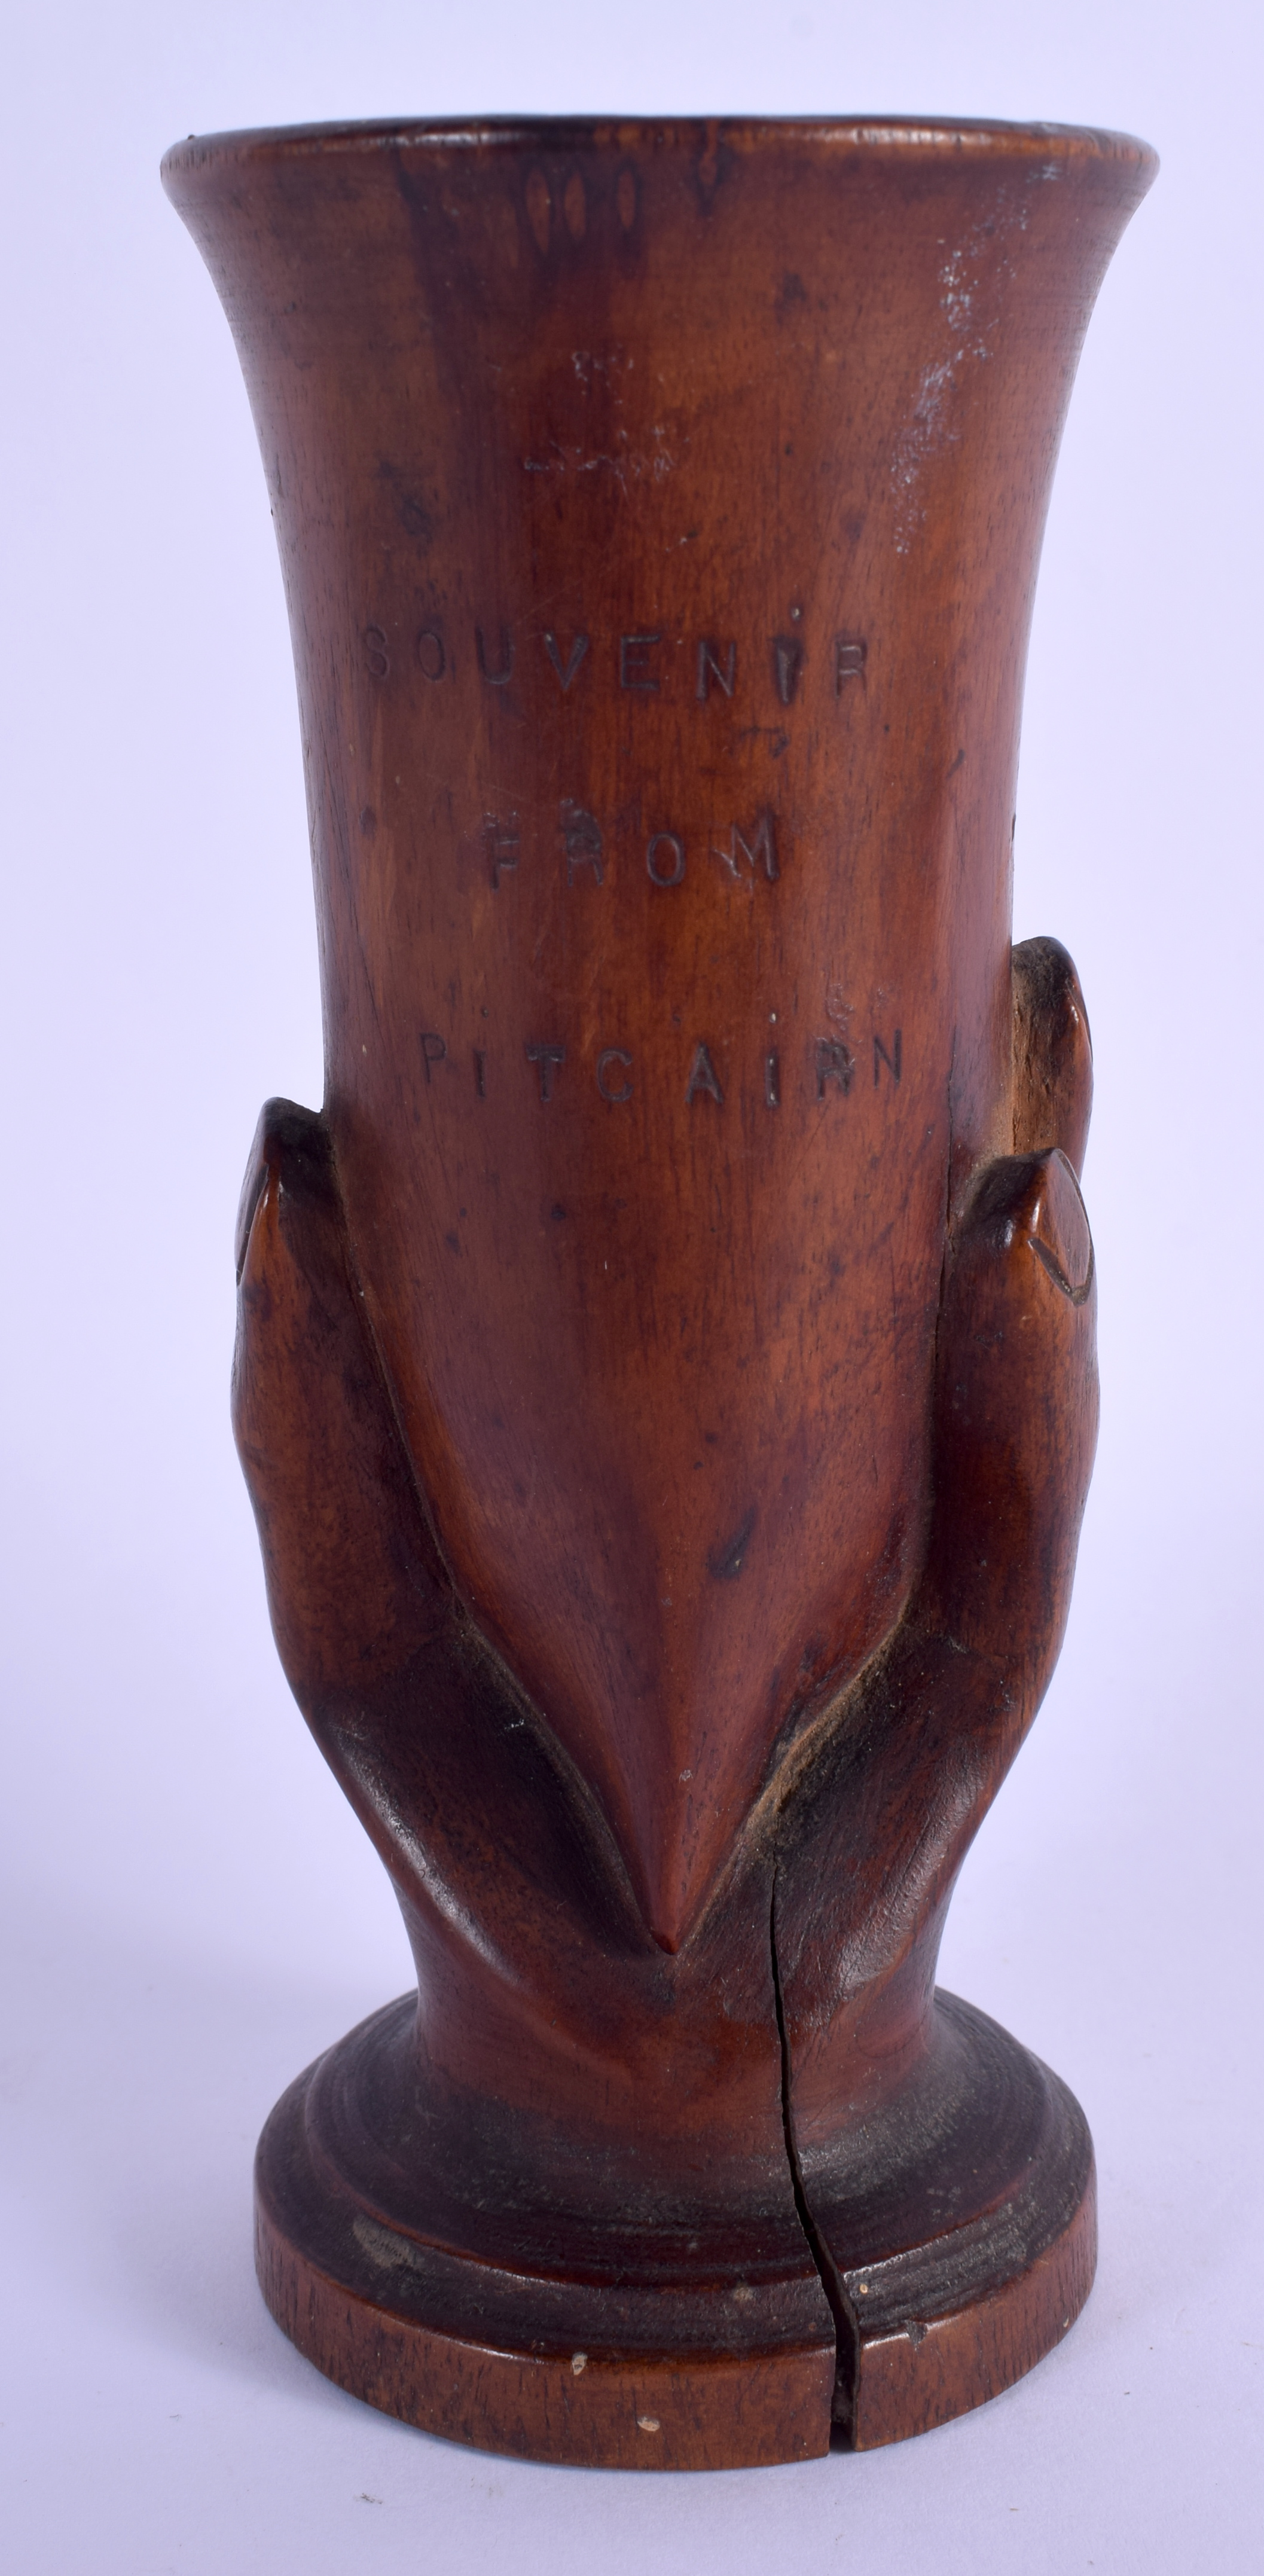 A RARE PITCAIRN ISLANDS CARVED WOOD VASE formed with an open hand. 19 cm high. - Image 2 of 3